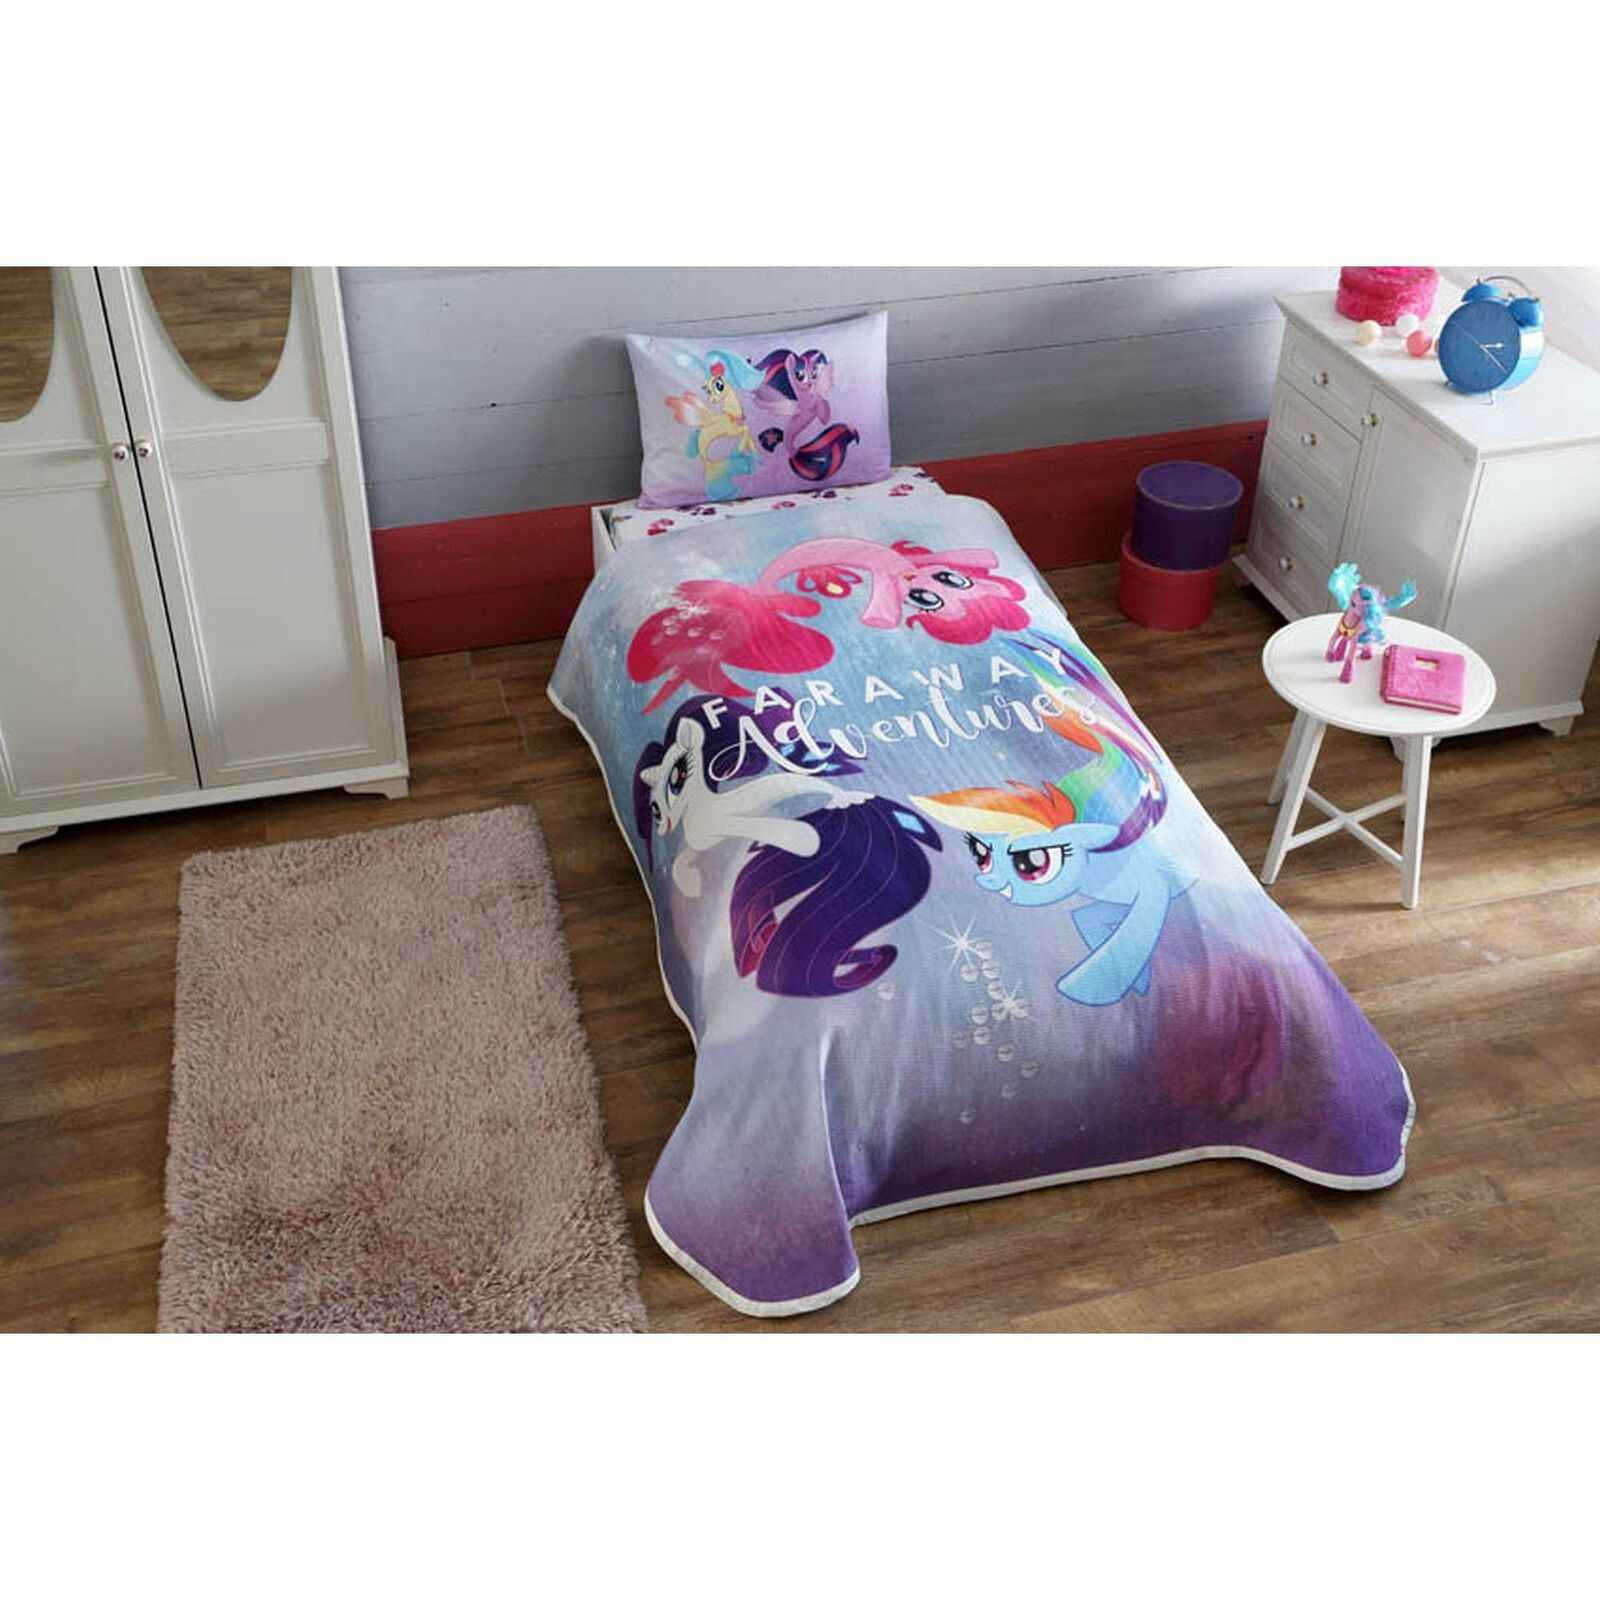 Copriletto My Little Pony.My Little Pony Children Single Bedspread Set 3 Pcs 100 Cotton Summer Bedding Bedding Sets Aliexpress